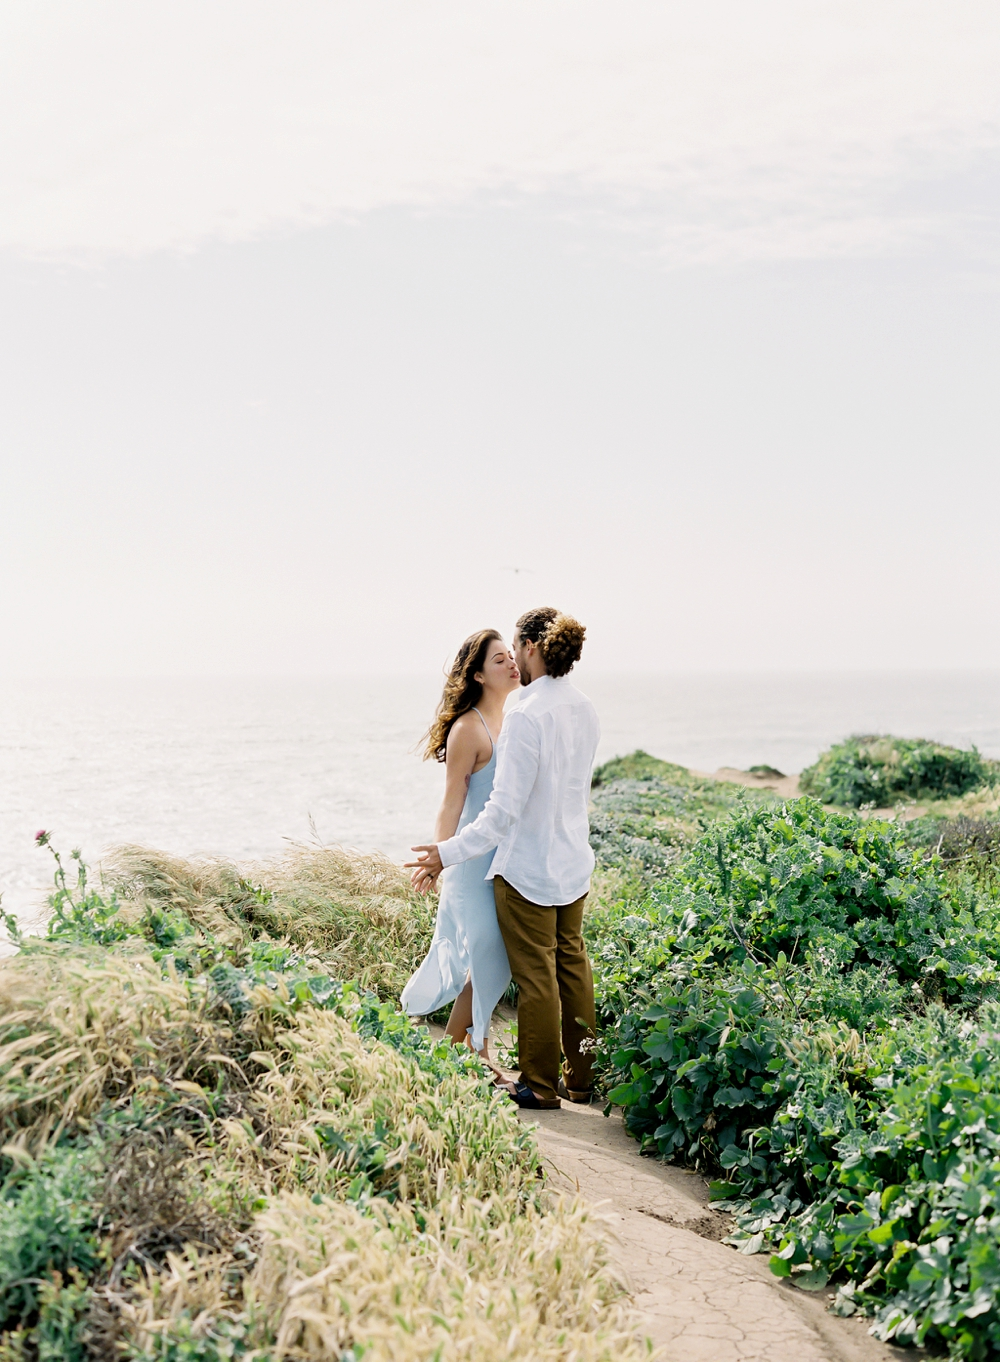 Vicki Grafton Photography | Fine Art Film Wedding Photographer | CA Santa Cruz Fine Art Film Wedding Photographer | San Francisco Bay Area Wedding Photographer_0029.jpg